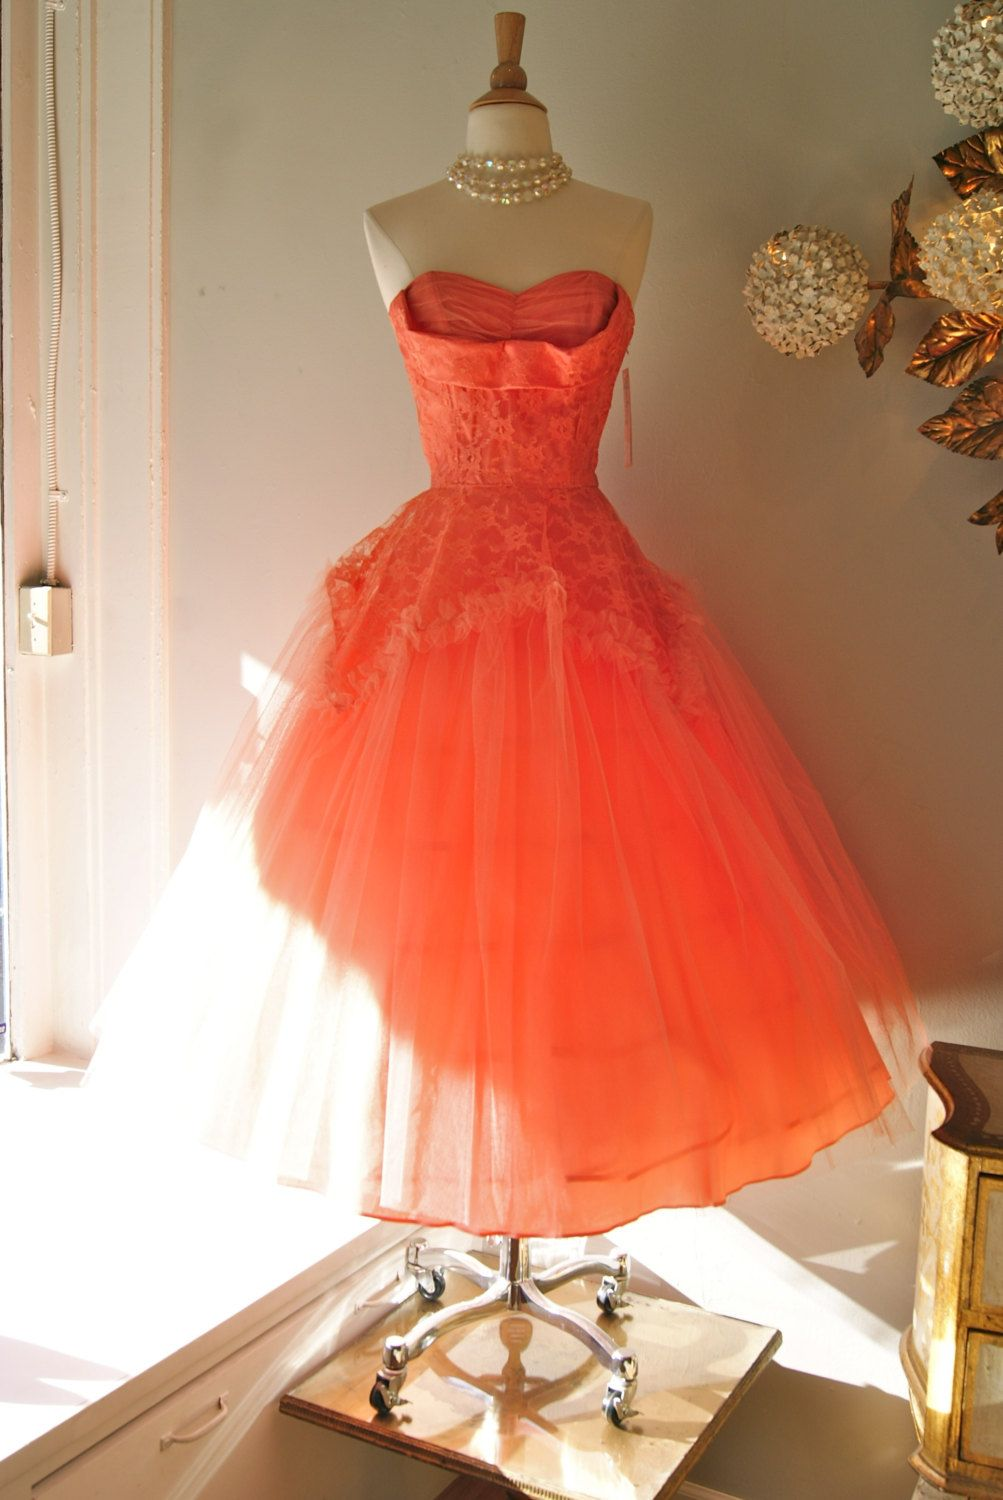 S coral cupcake tulle and lace strapless dress vintage loves